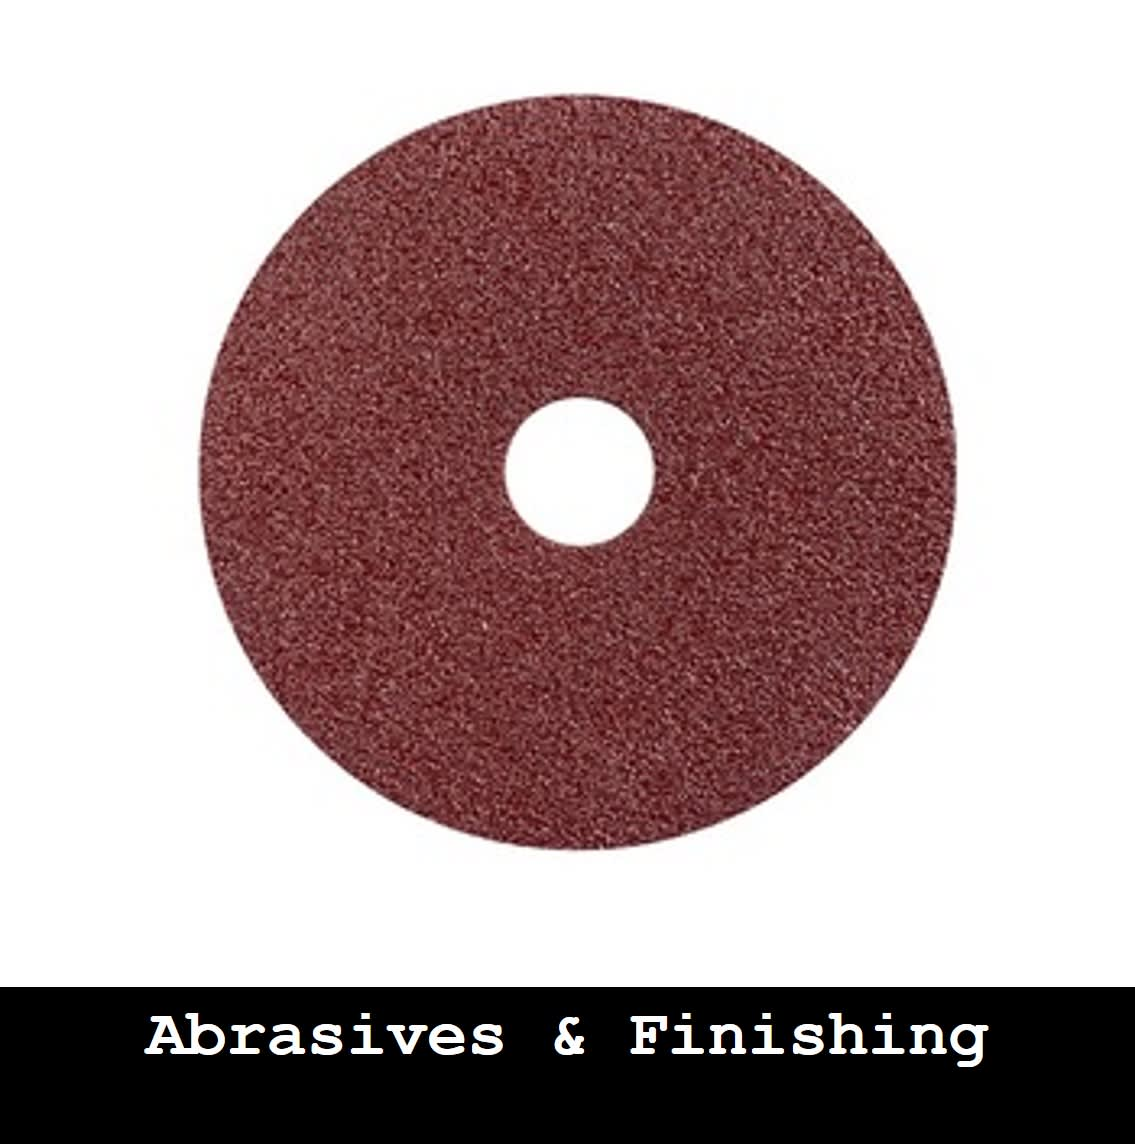 Abrasives & Finishing | Smith Industrial Supply | Port Colborne Industrial Supply